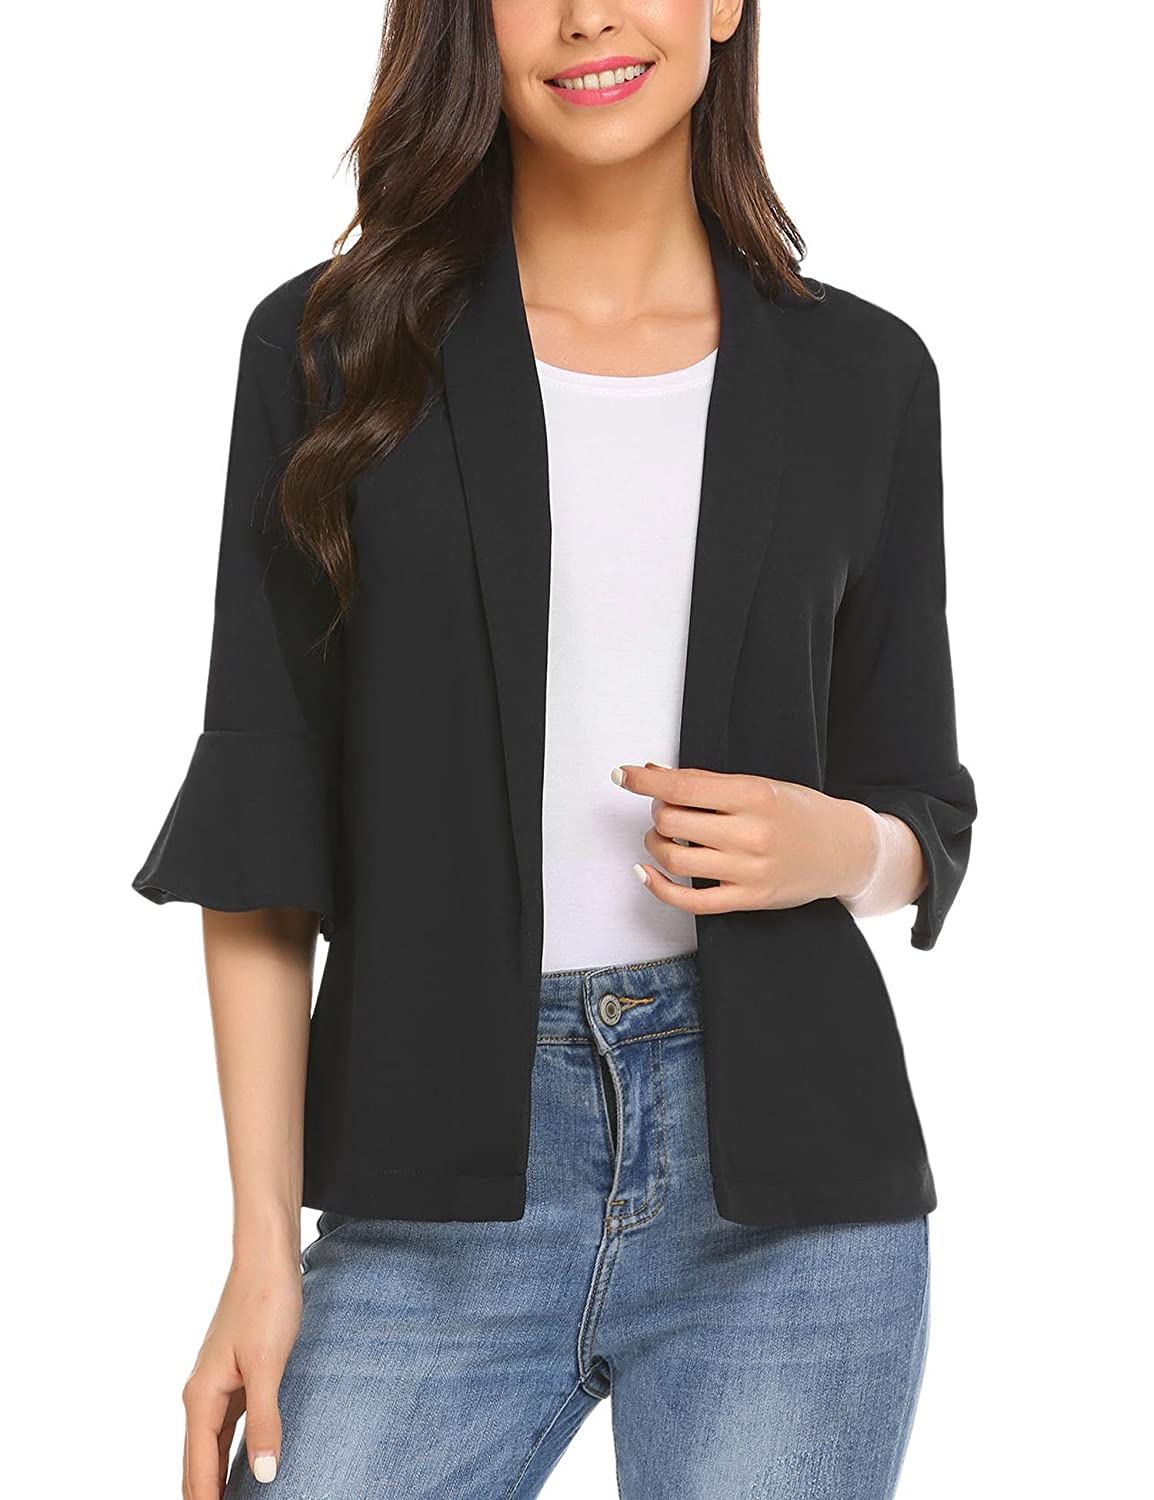 25f51cffd36 ... Women s Casual Office Blazer Zip up Slim Fitted Work Jacket. Wholesale  Price 26.99 -  27.99. Zipper closure. Material  90% polyester